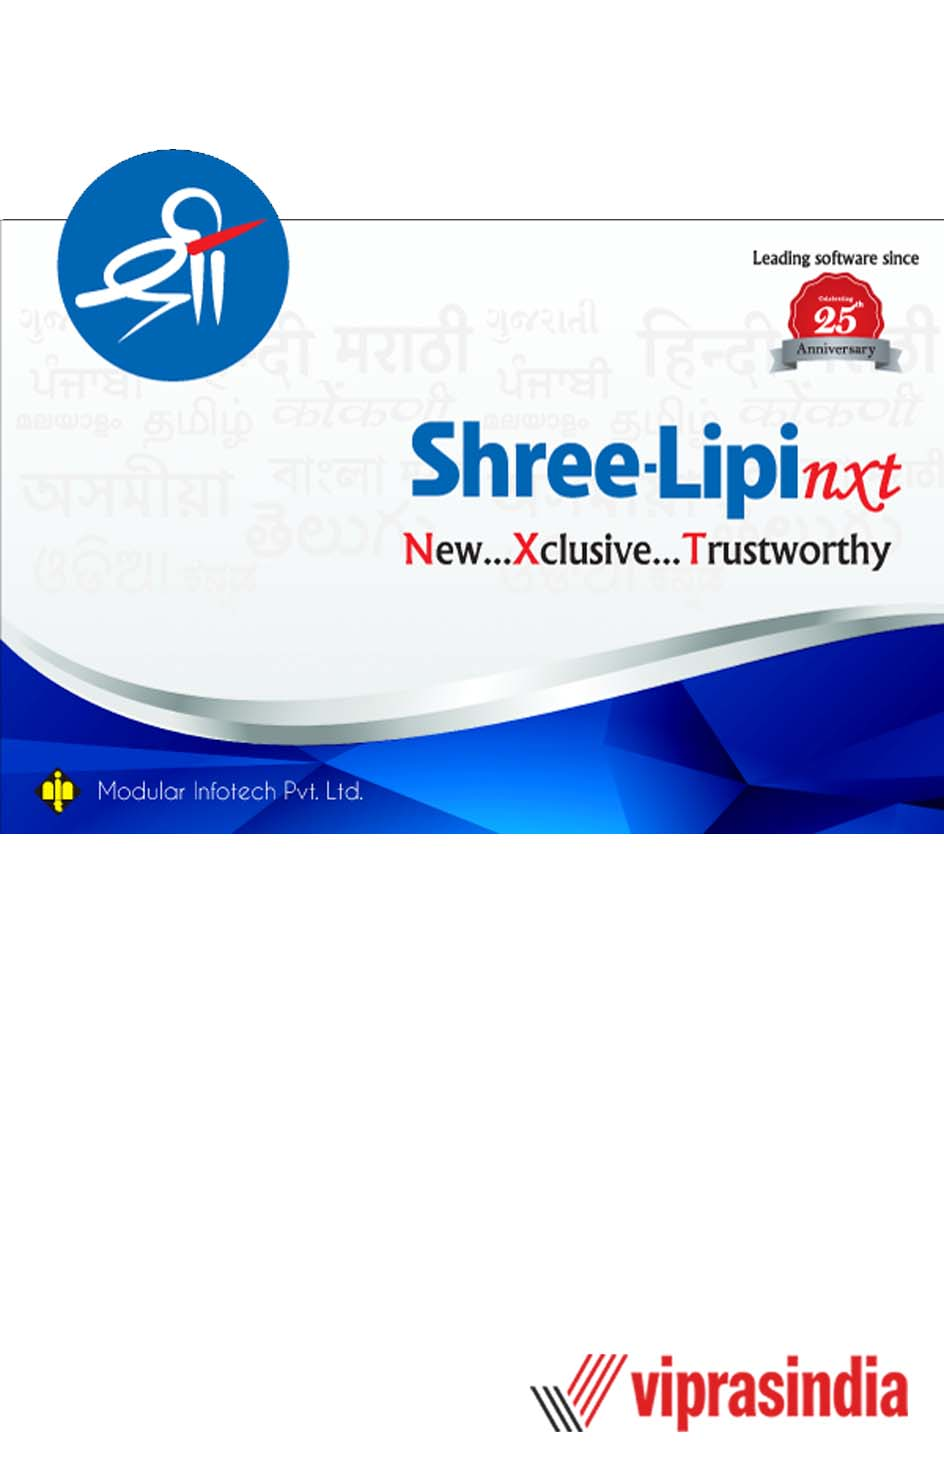 Shree-Lipi nxt Multilingual Software